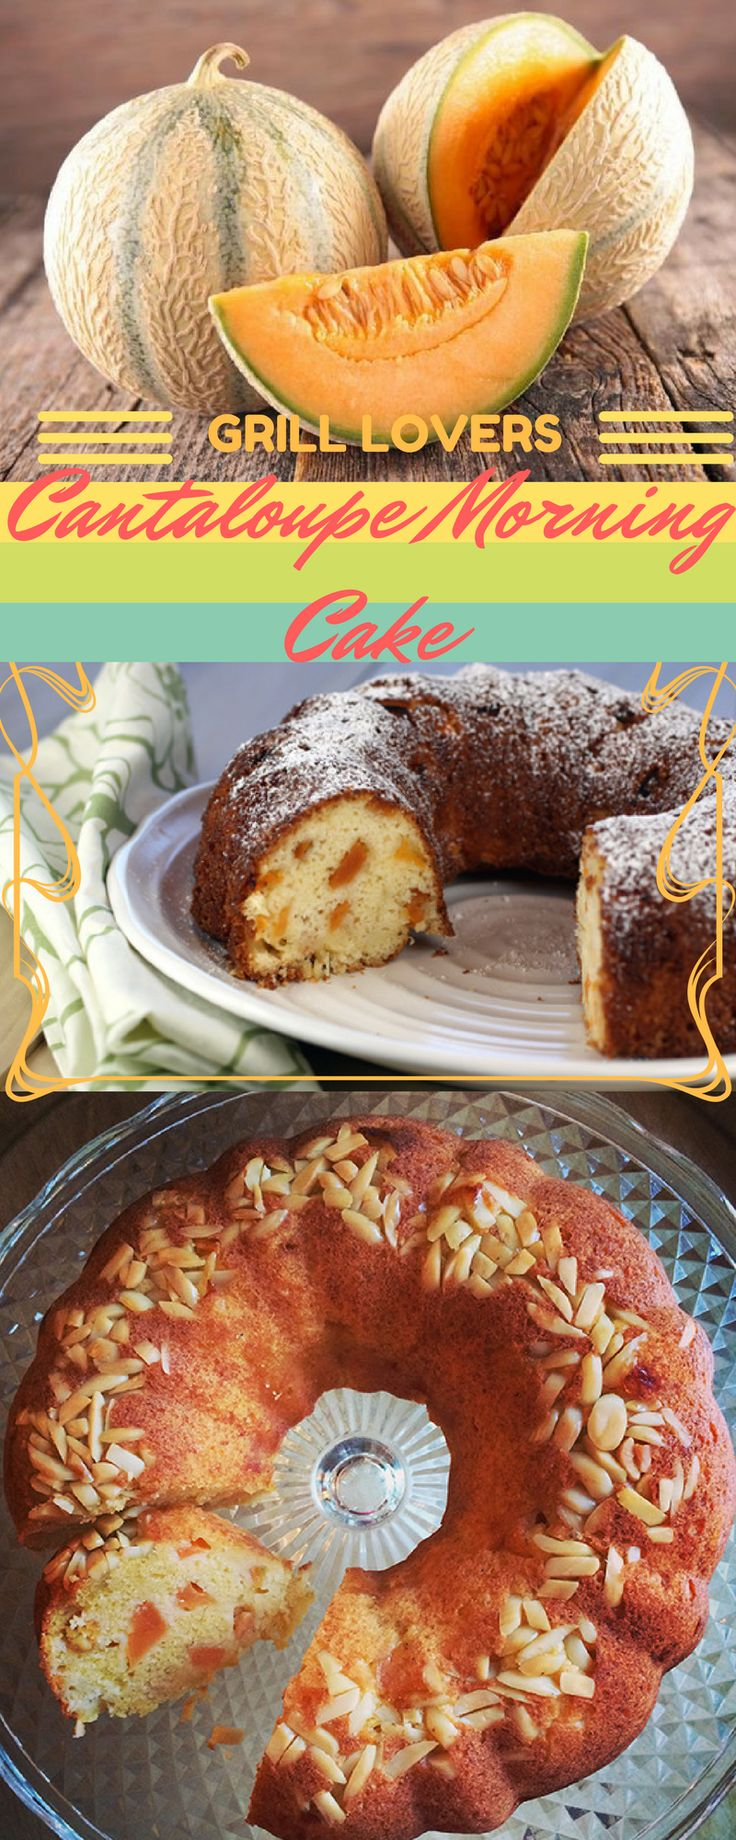 Grill Lovers' Cantaloupe Morning Cake Recipe   #recipes #foodporn #foodie